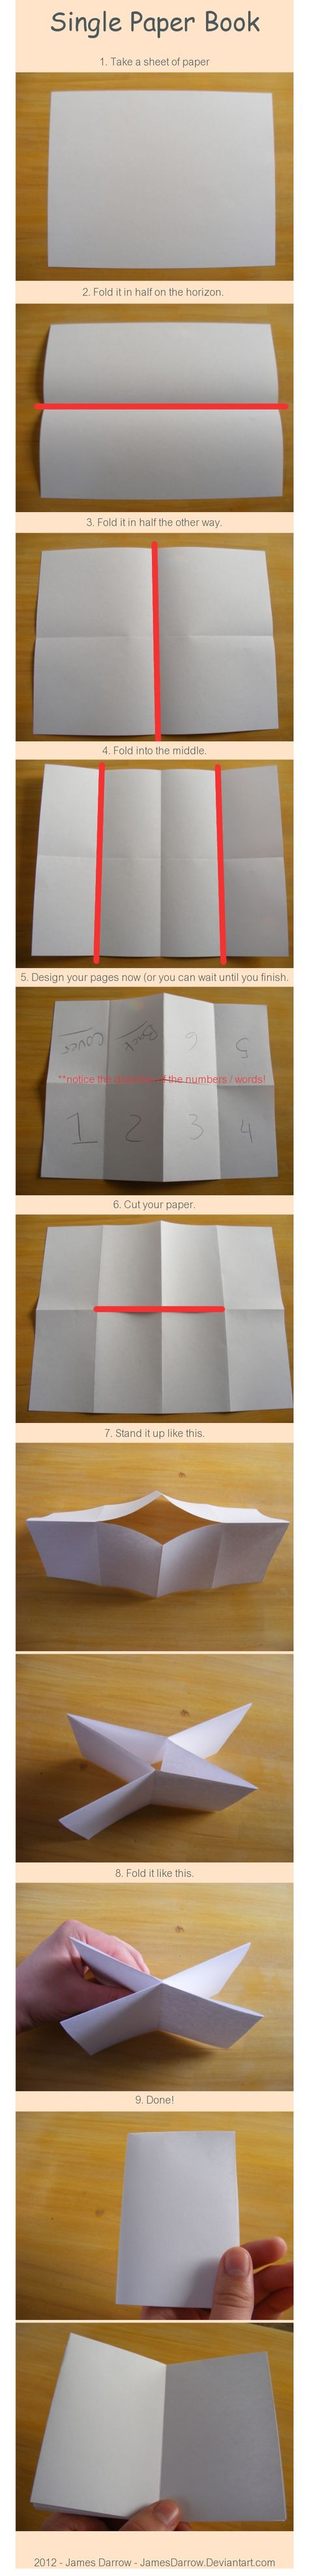 Single sheet of paper = mini book - I always forget exactly how to make these